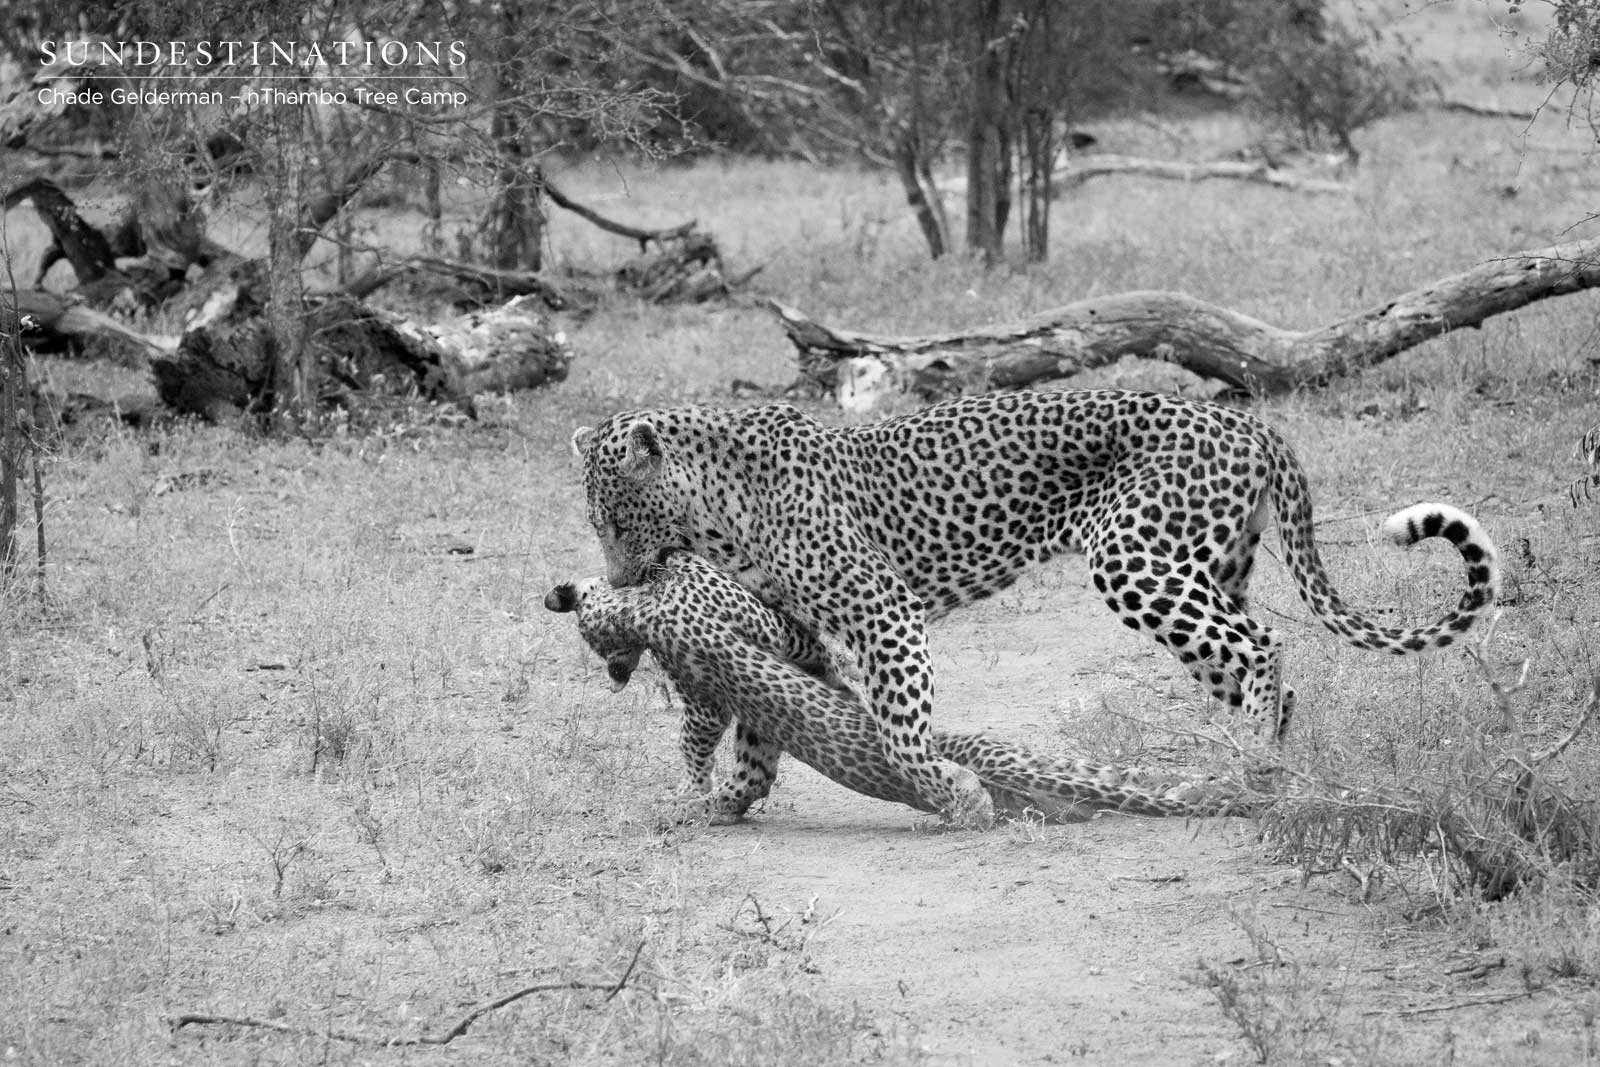 Massive Male Leopard Kills 6 Month Old Leopard Cub, Then Eats It